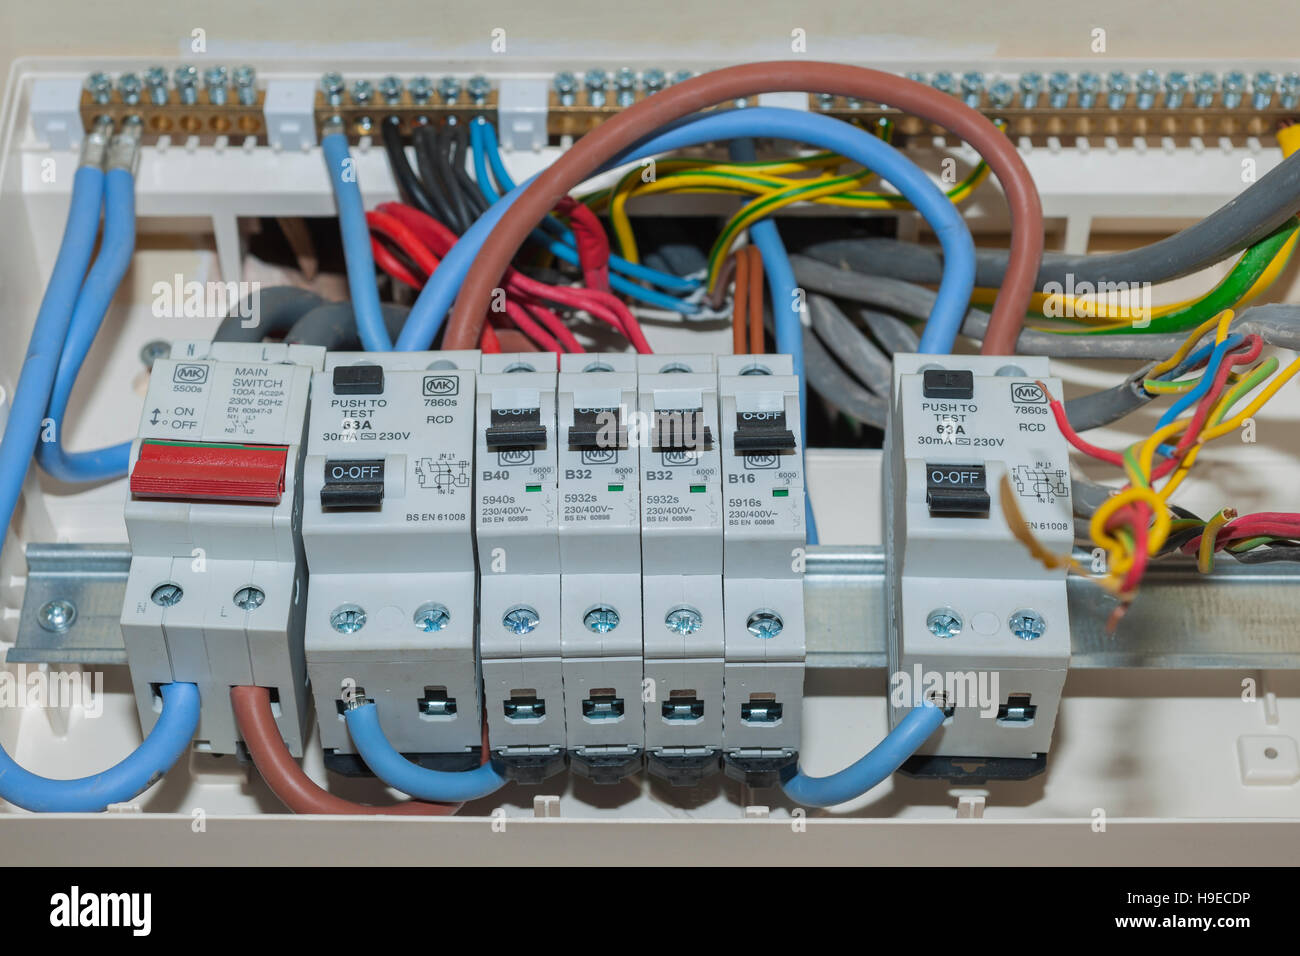 A RCD fuse box in the Uk - Stock Image